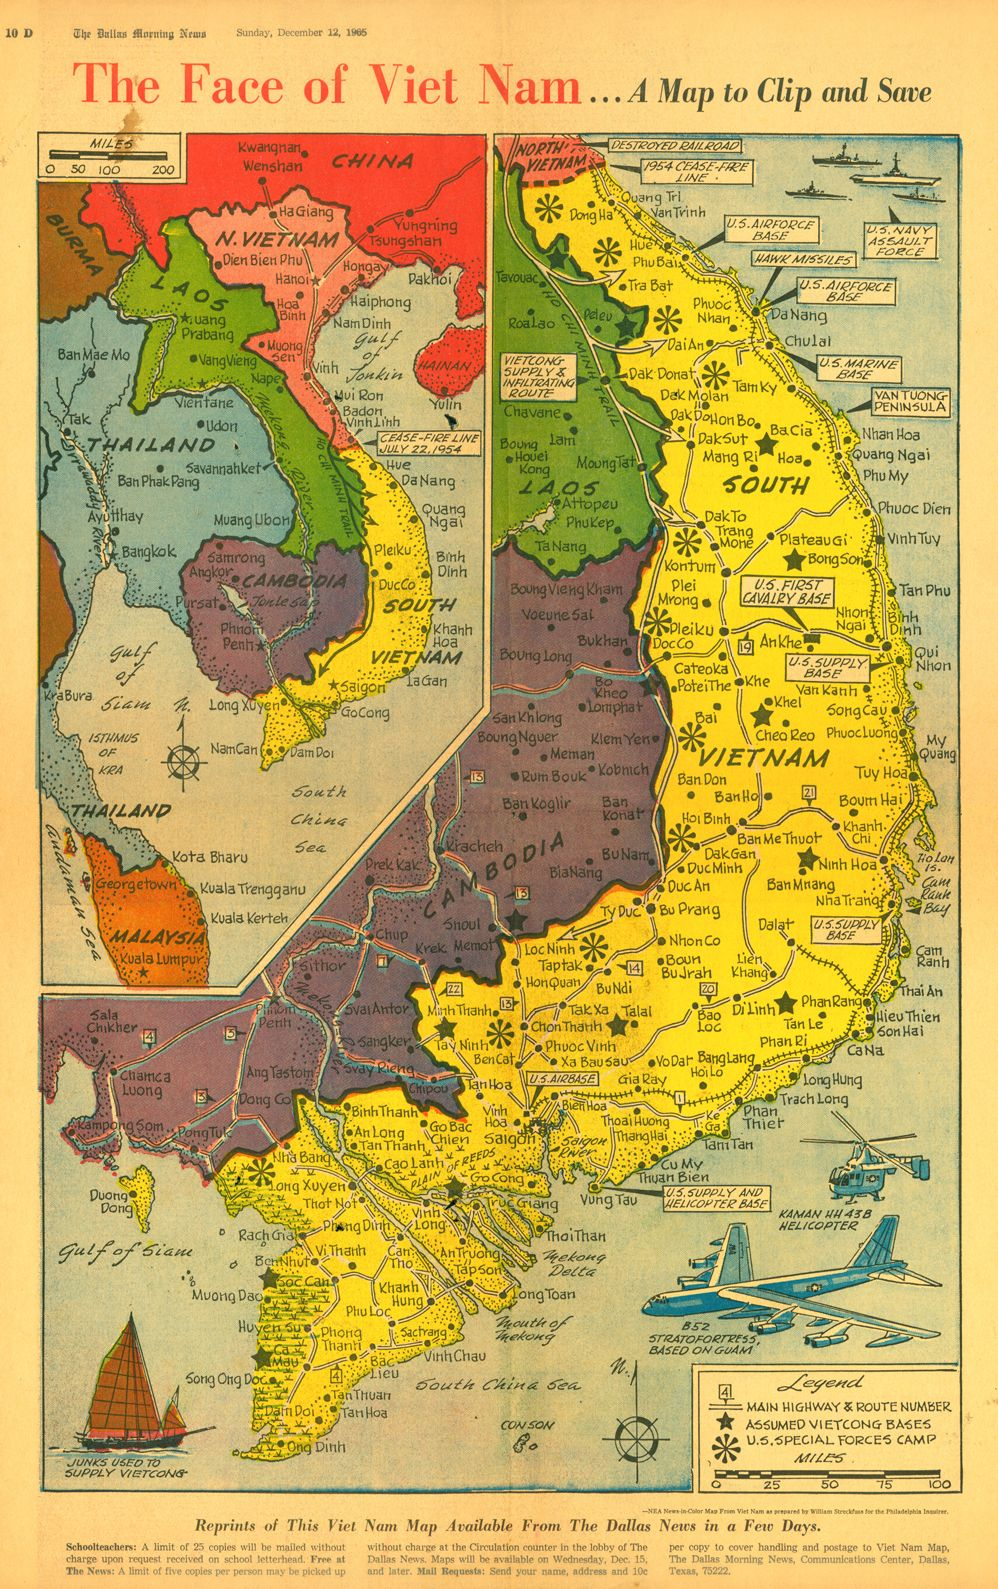 map of vietnam from 1965 Glen Tanner from Beyond the Moon was held